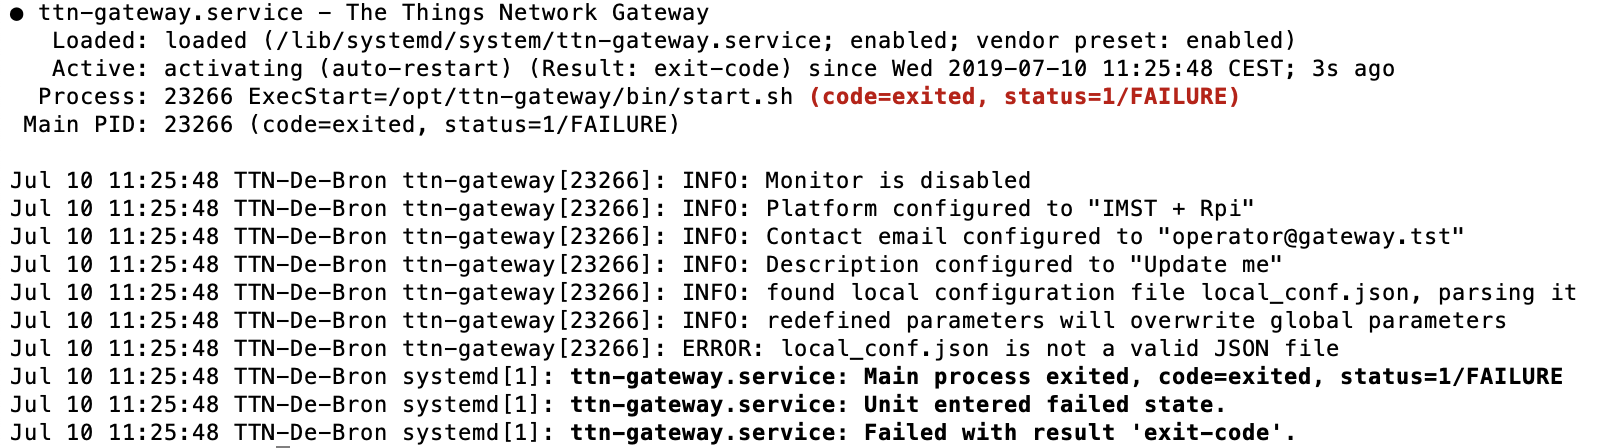 iC880A ERROR: local_conf json is not a valid JSON file